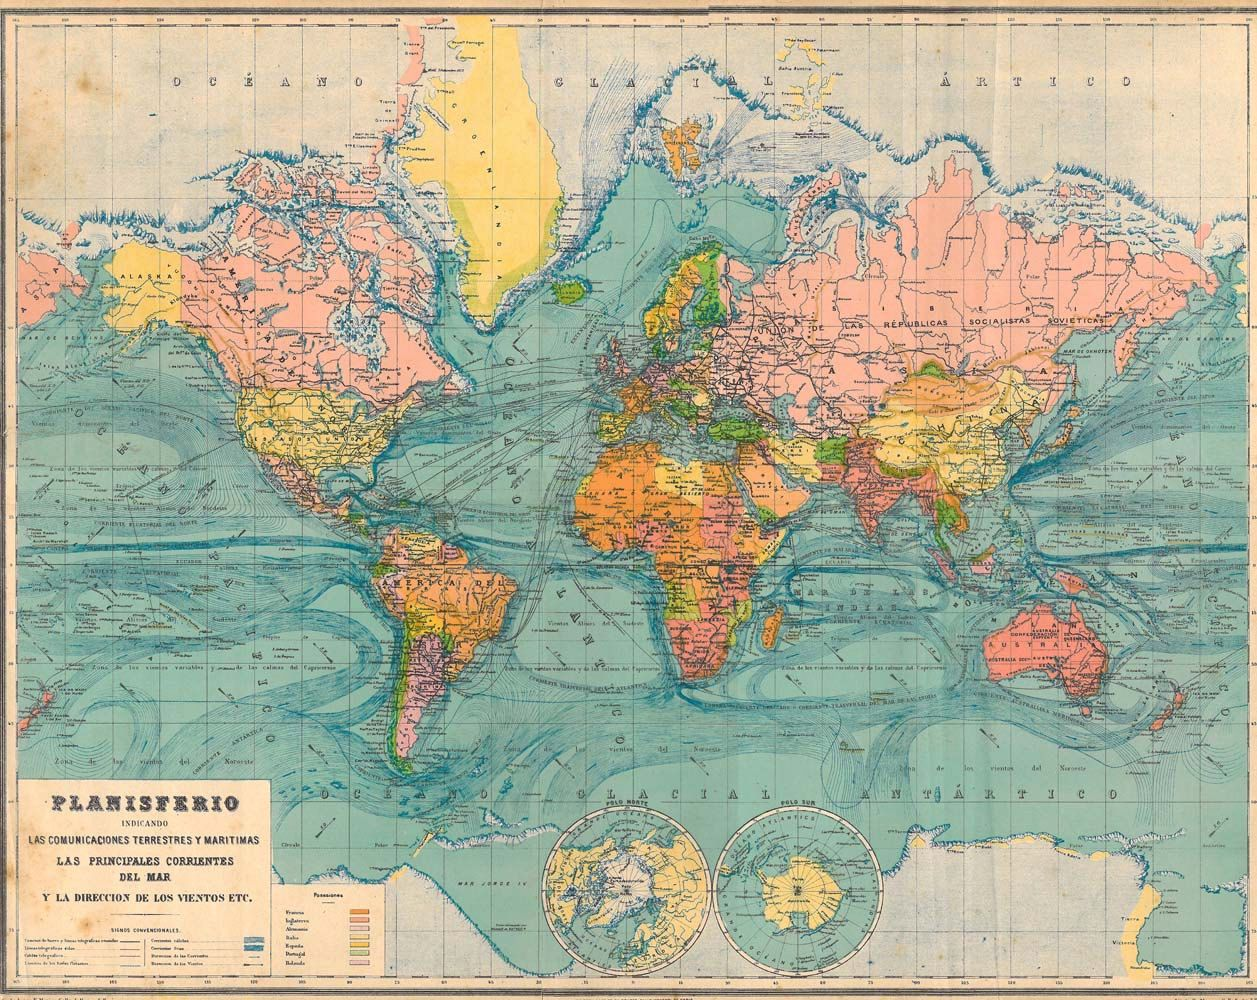 Antique world map 1929 very large 26 by 21 inches large world map vintage 1929 north and south pole gumiabroncs Images